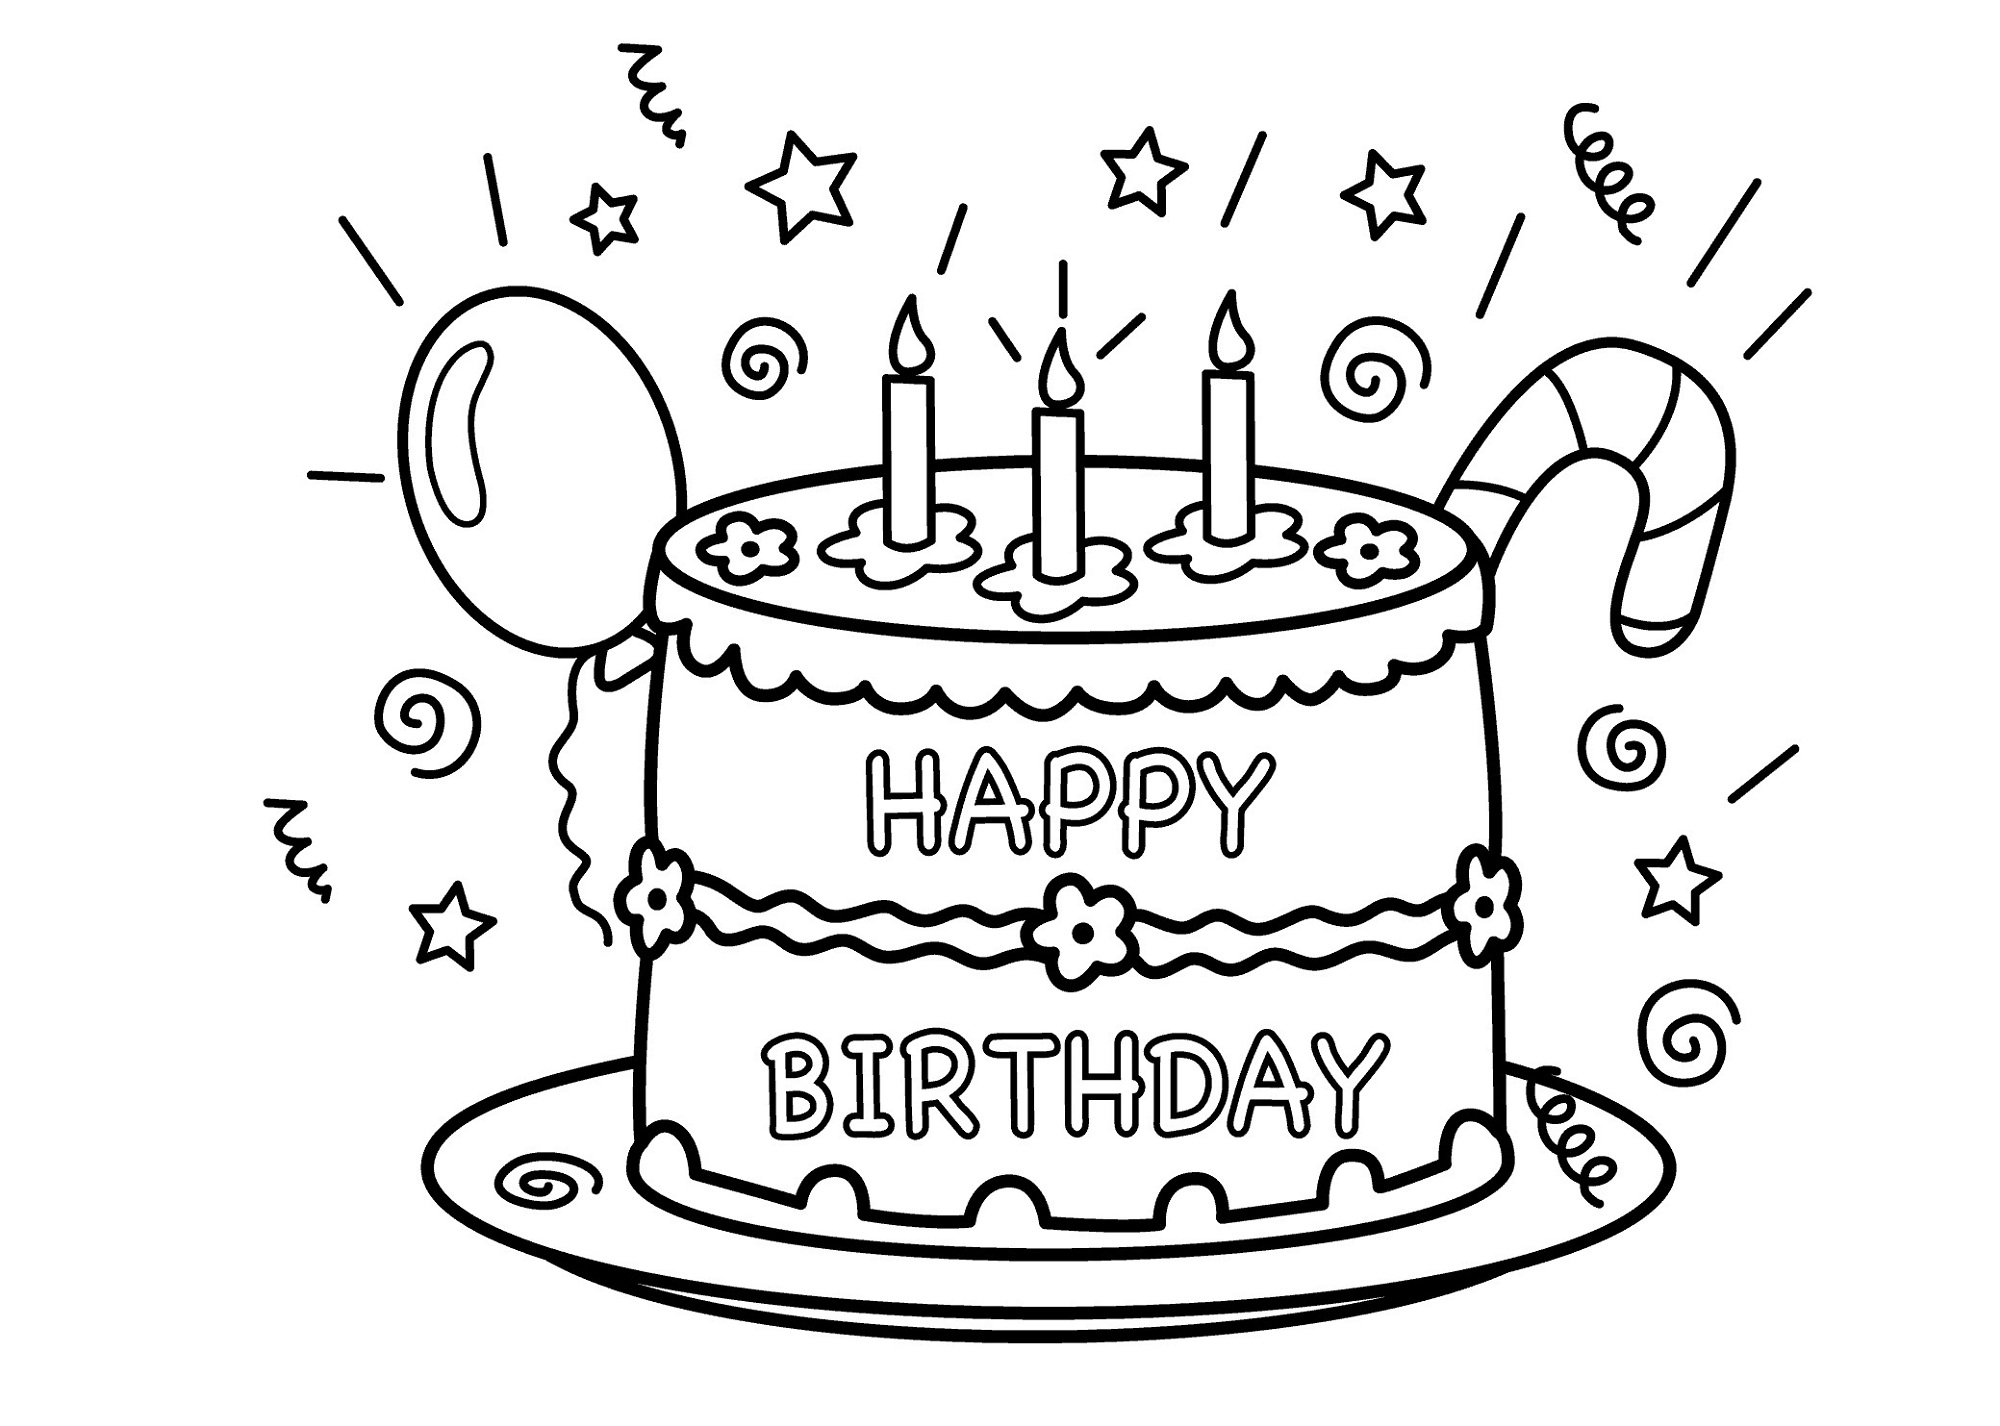 birthday-cake-color-page-new